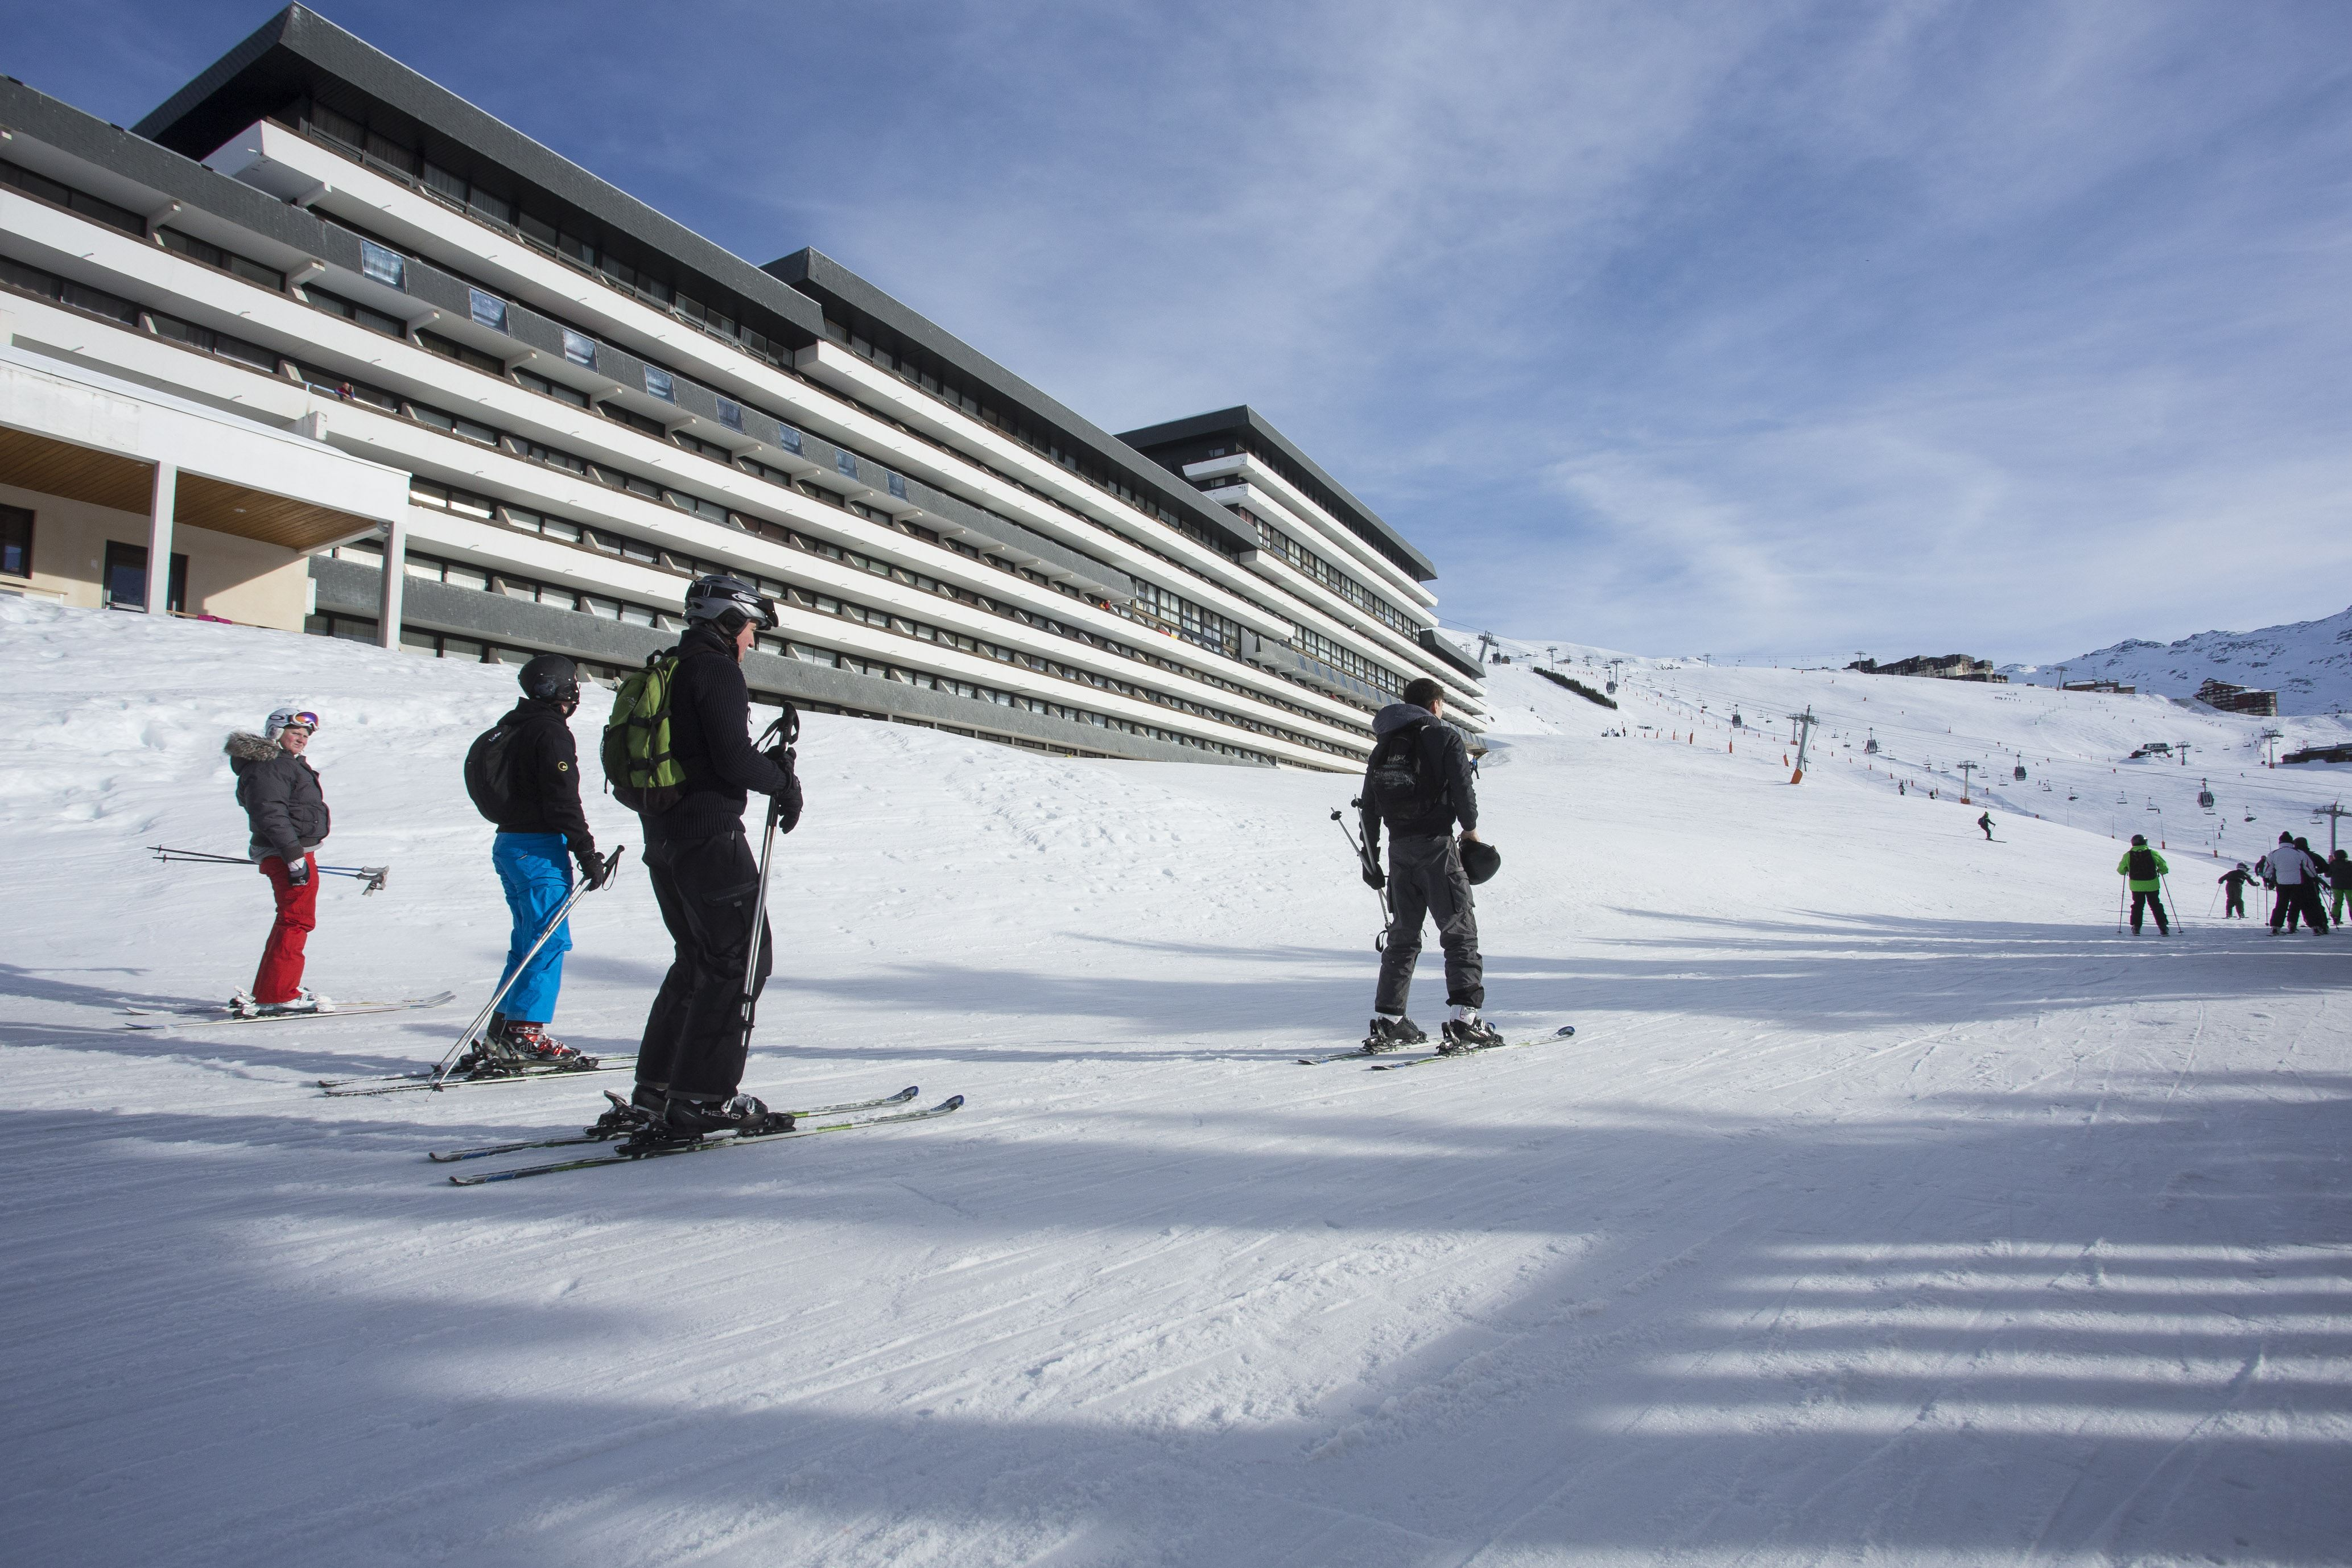 Residence ski-in ski-out / SOLEIL VACANCES LES MENUIRES